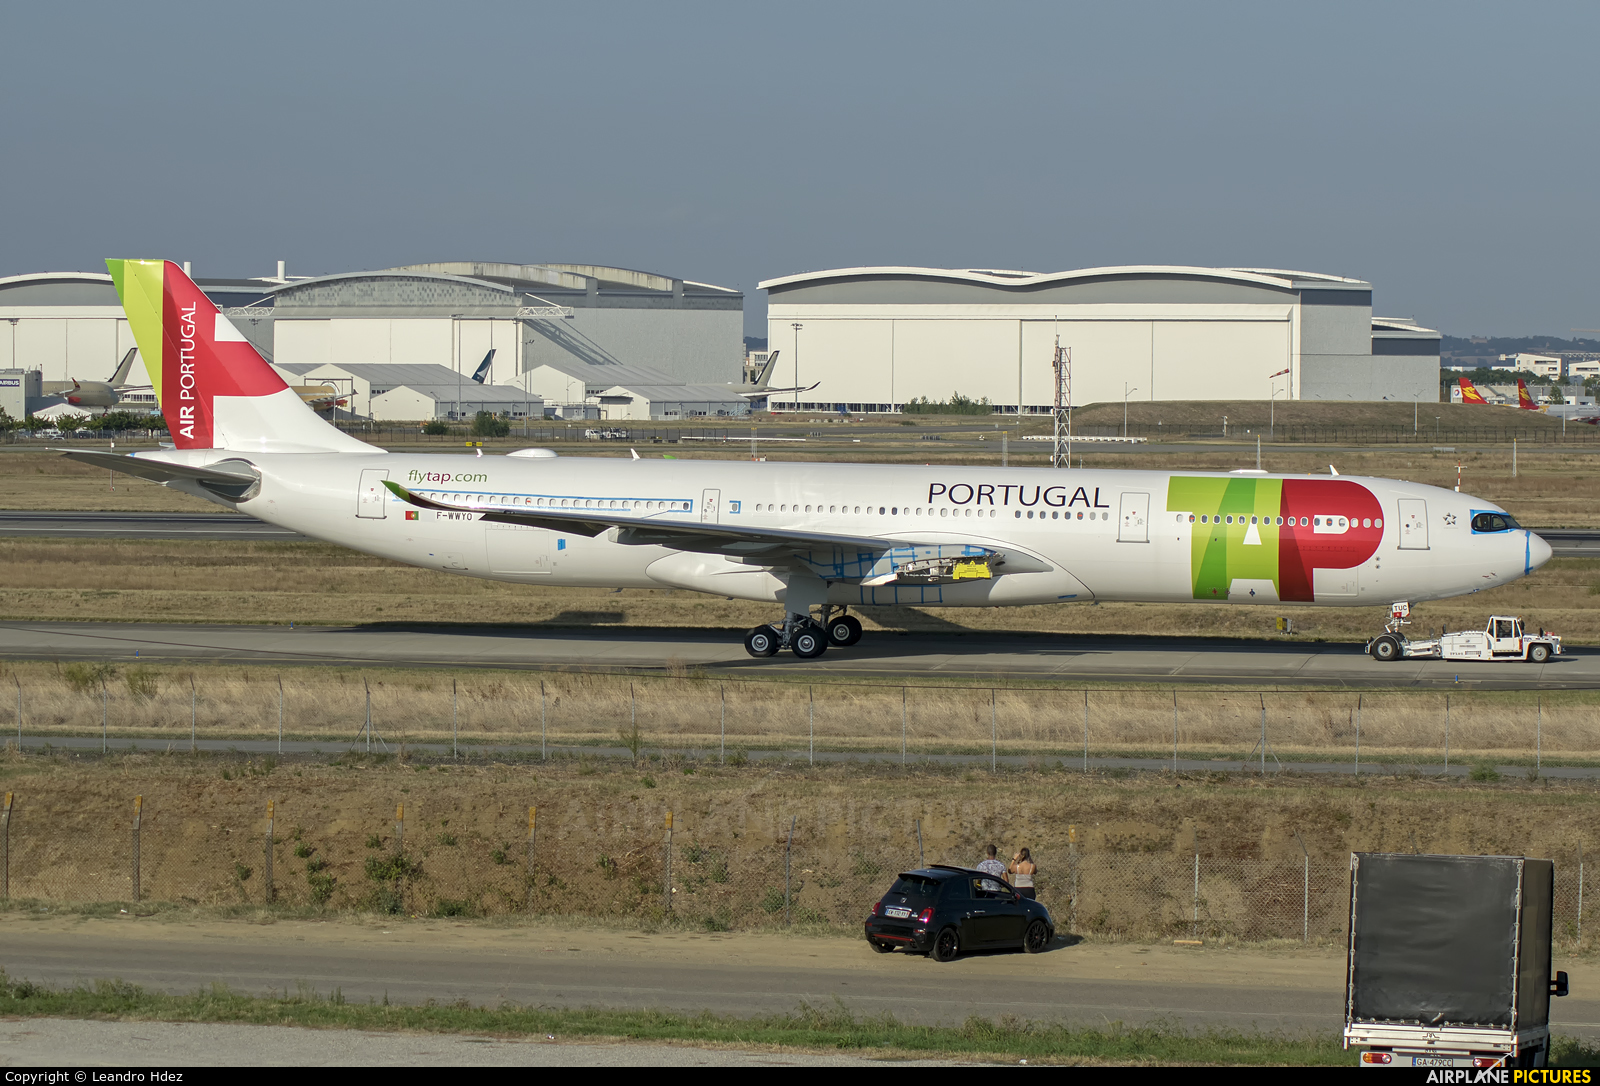 TAP Portugal F-WWYO aircraft at Toulouse - Blagnac